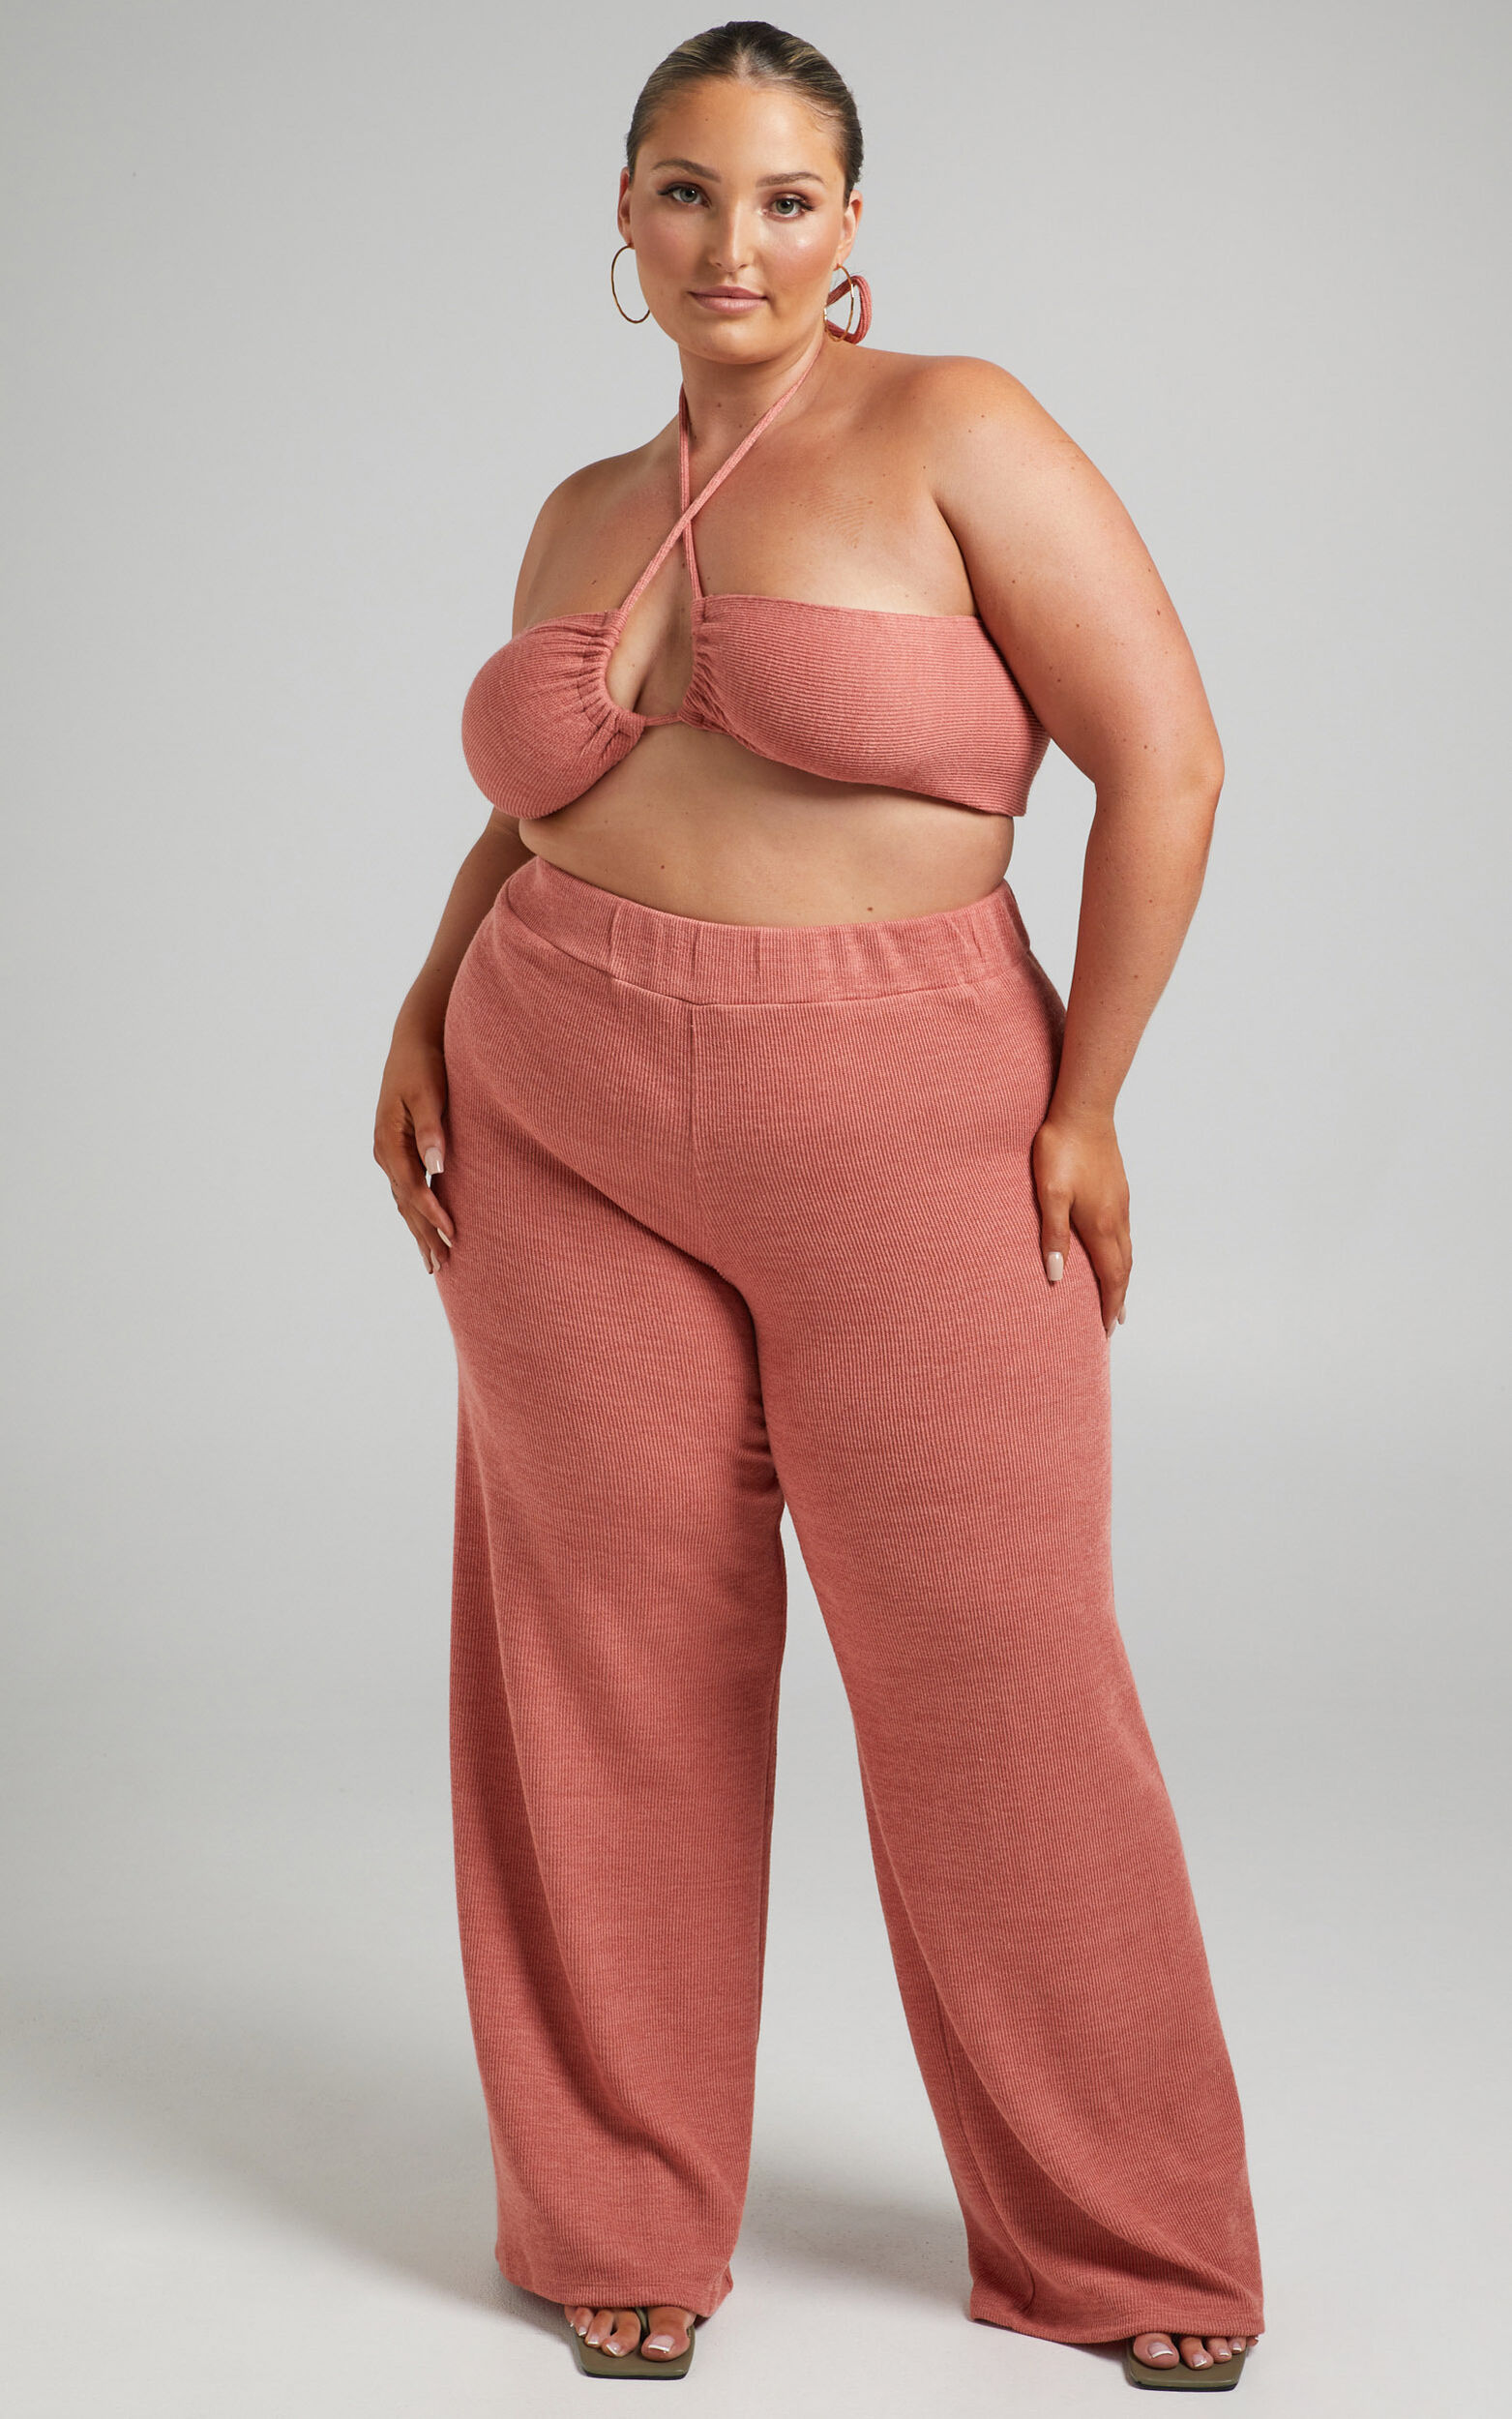 Juliann Knit Two Piece Pant Set with Crop Top in Terracotta - 04, ORG2, super-hi-res image number null